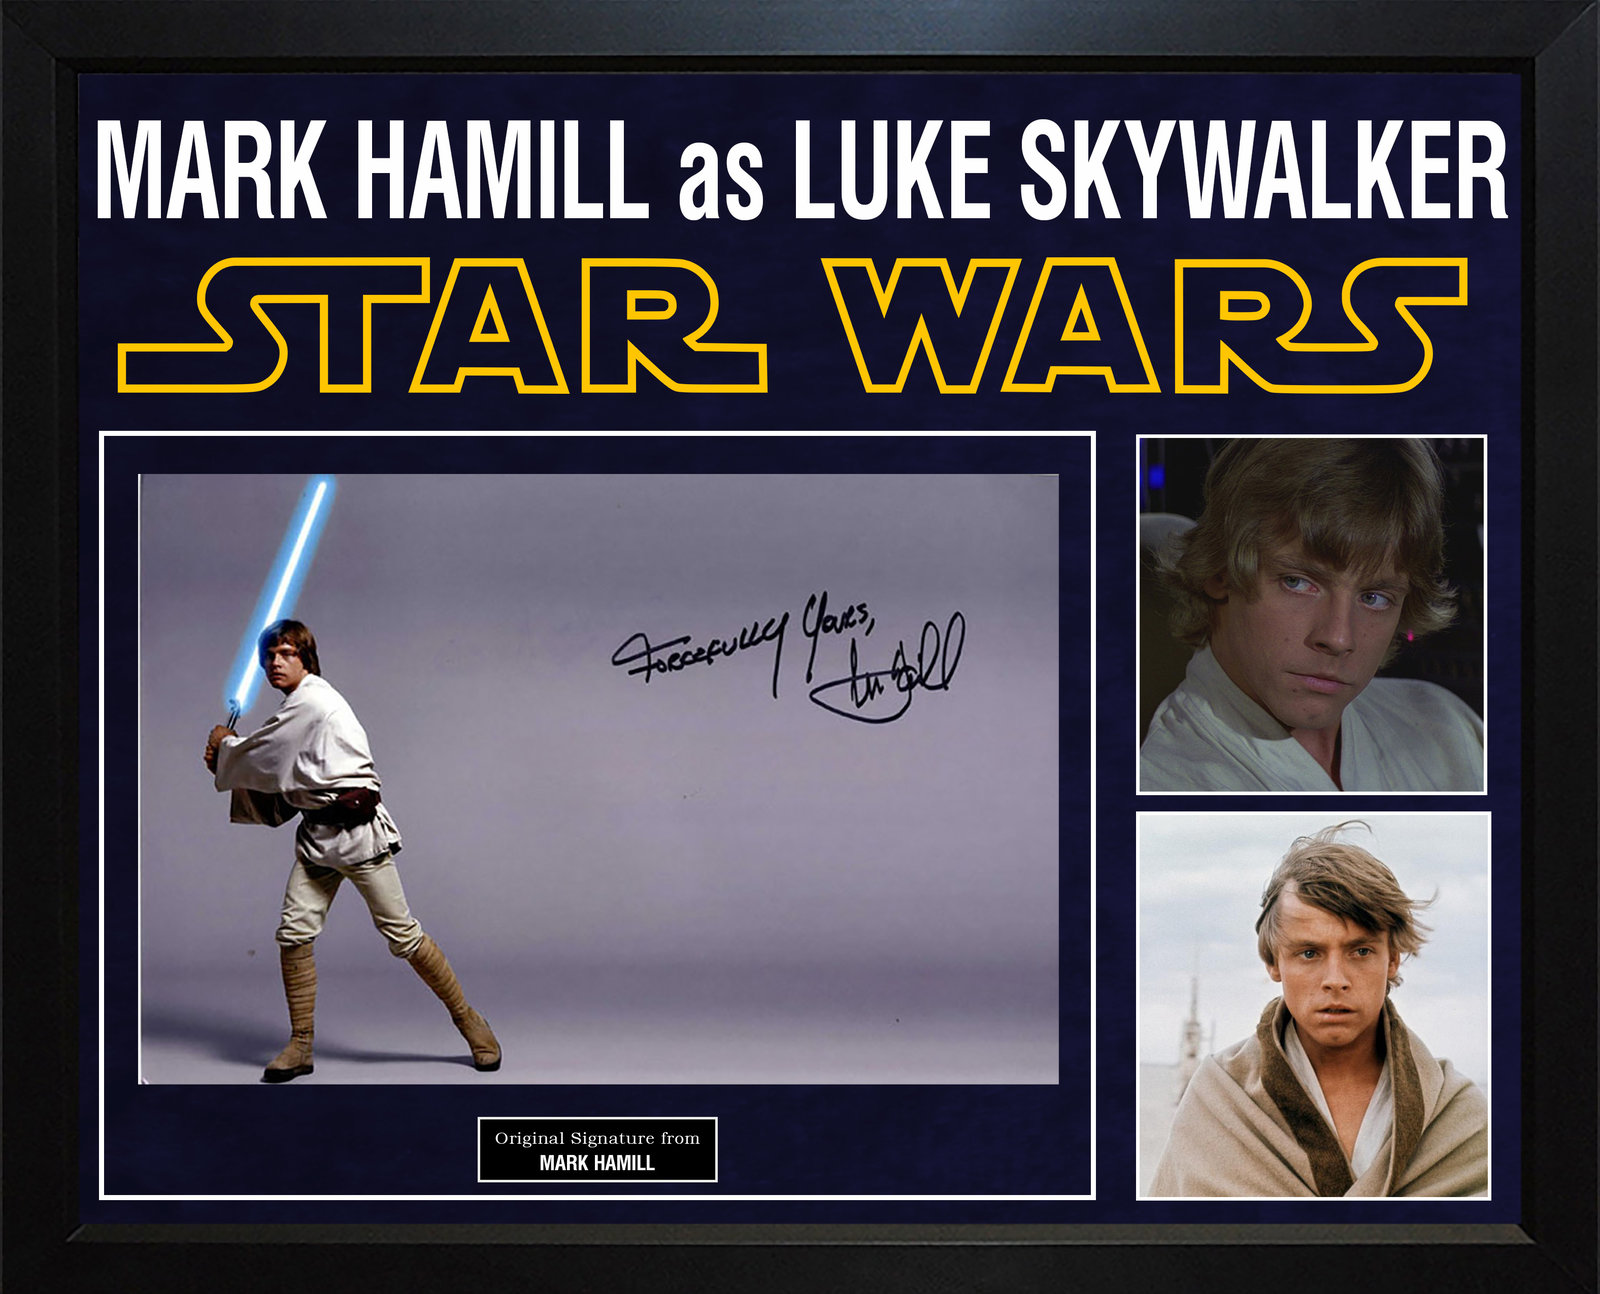 Mark Hamill Autographed Star Wars Luke Skywalker Photo In Custom Framed Display